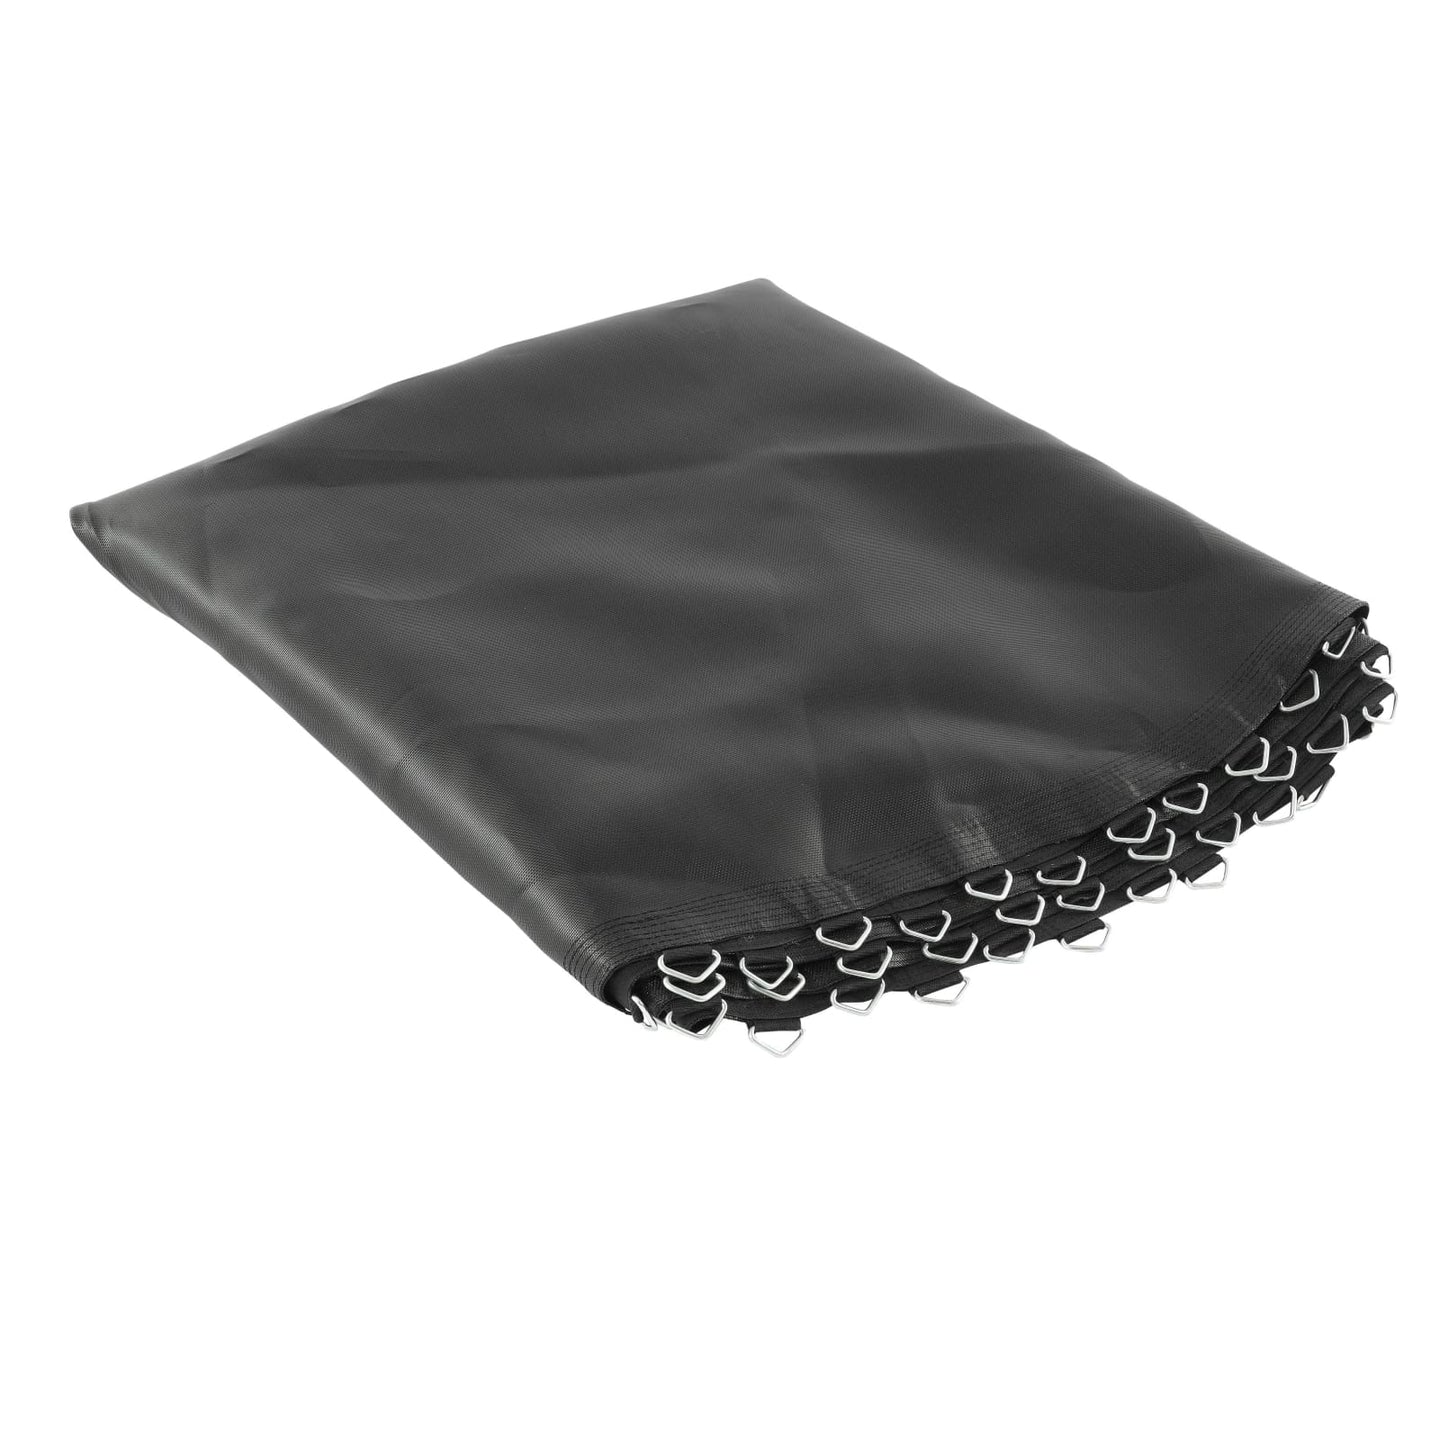 Upper Bounce Trampoline Replacement Jumping Mat Fits For 16 Ft. Round Frames W/ 108 V-Rings 7.5 Springs - Trampoline Replacements